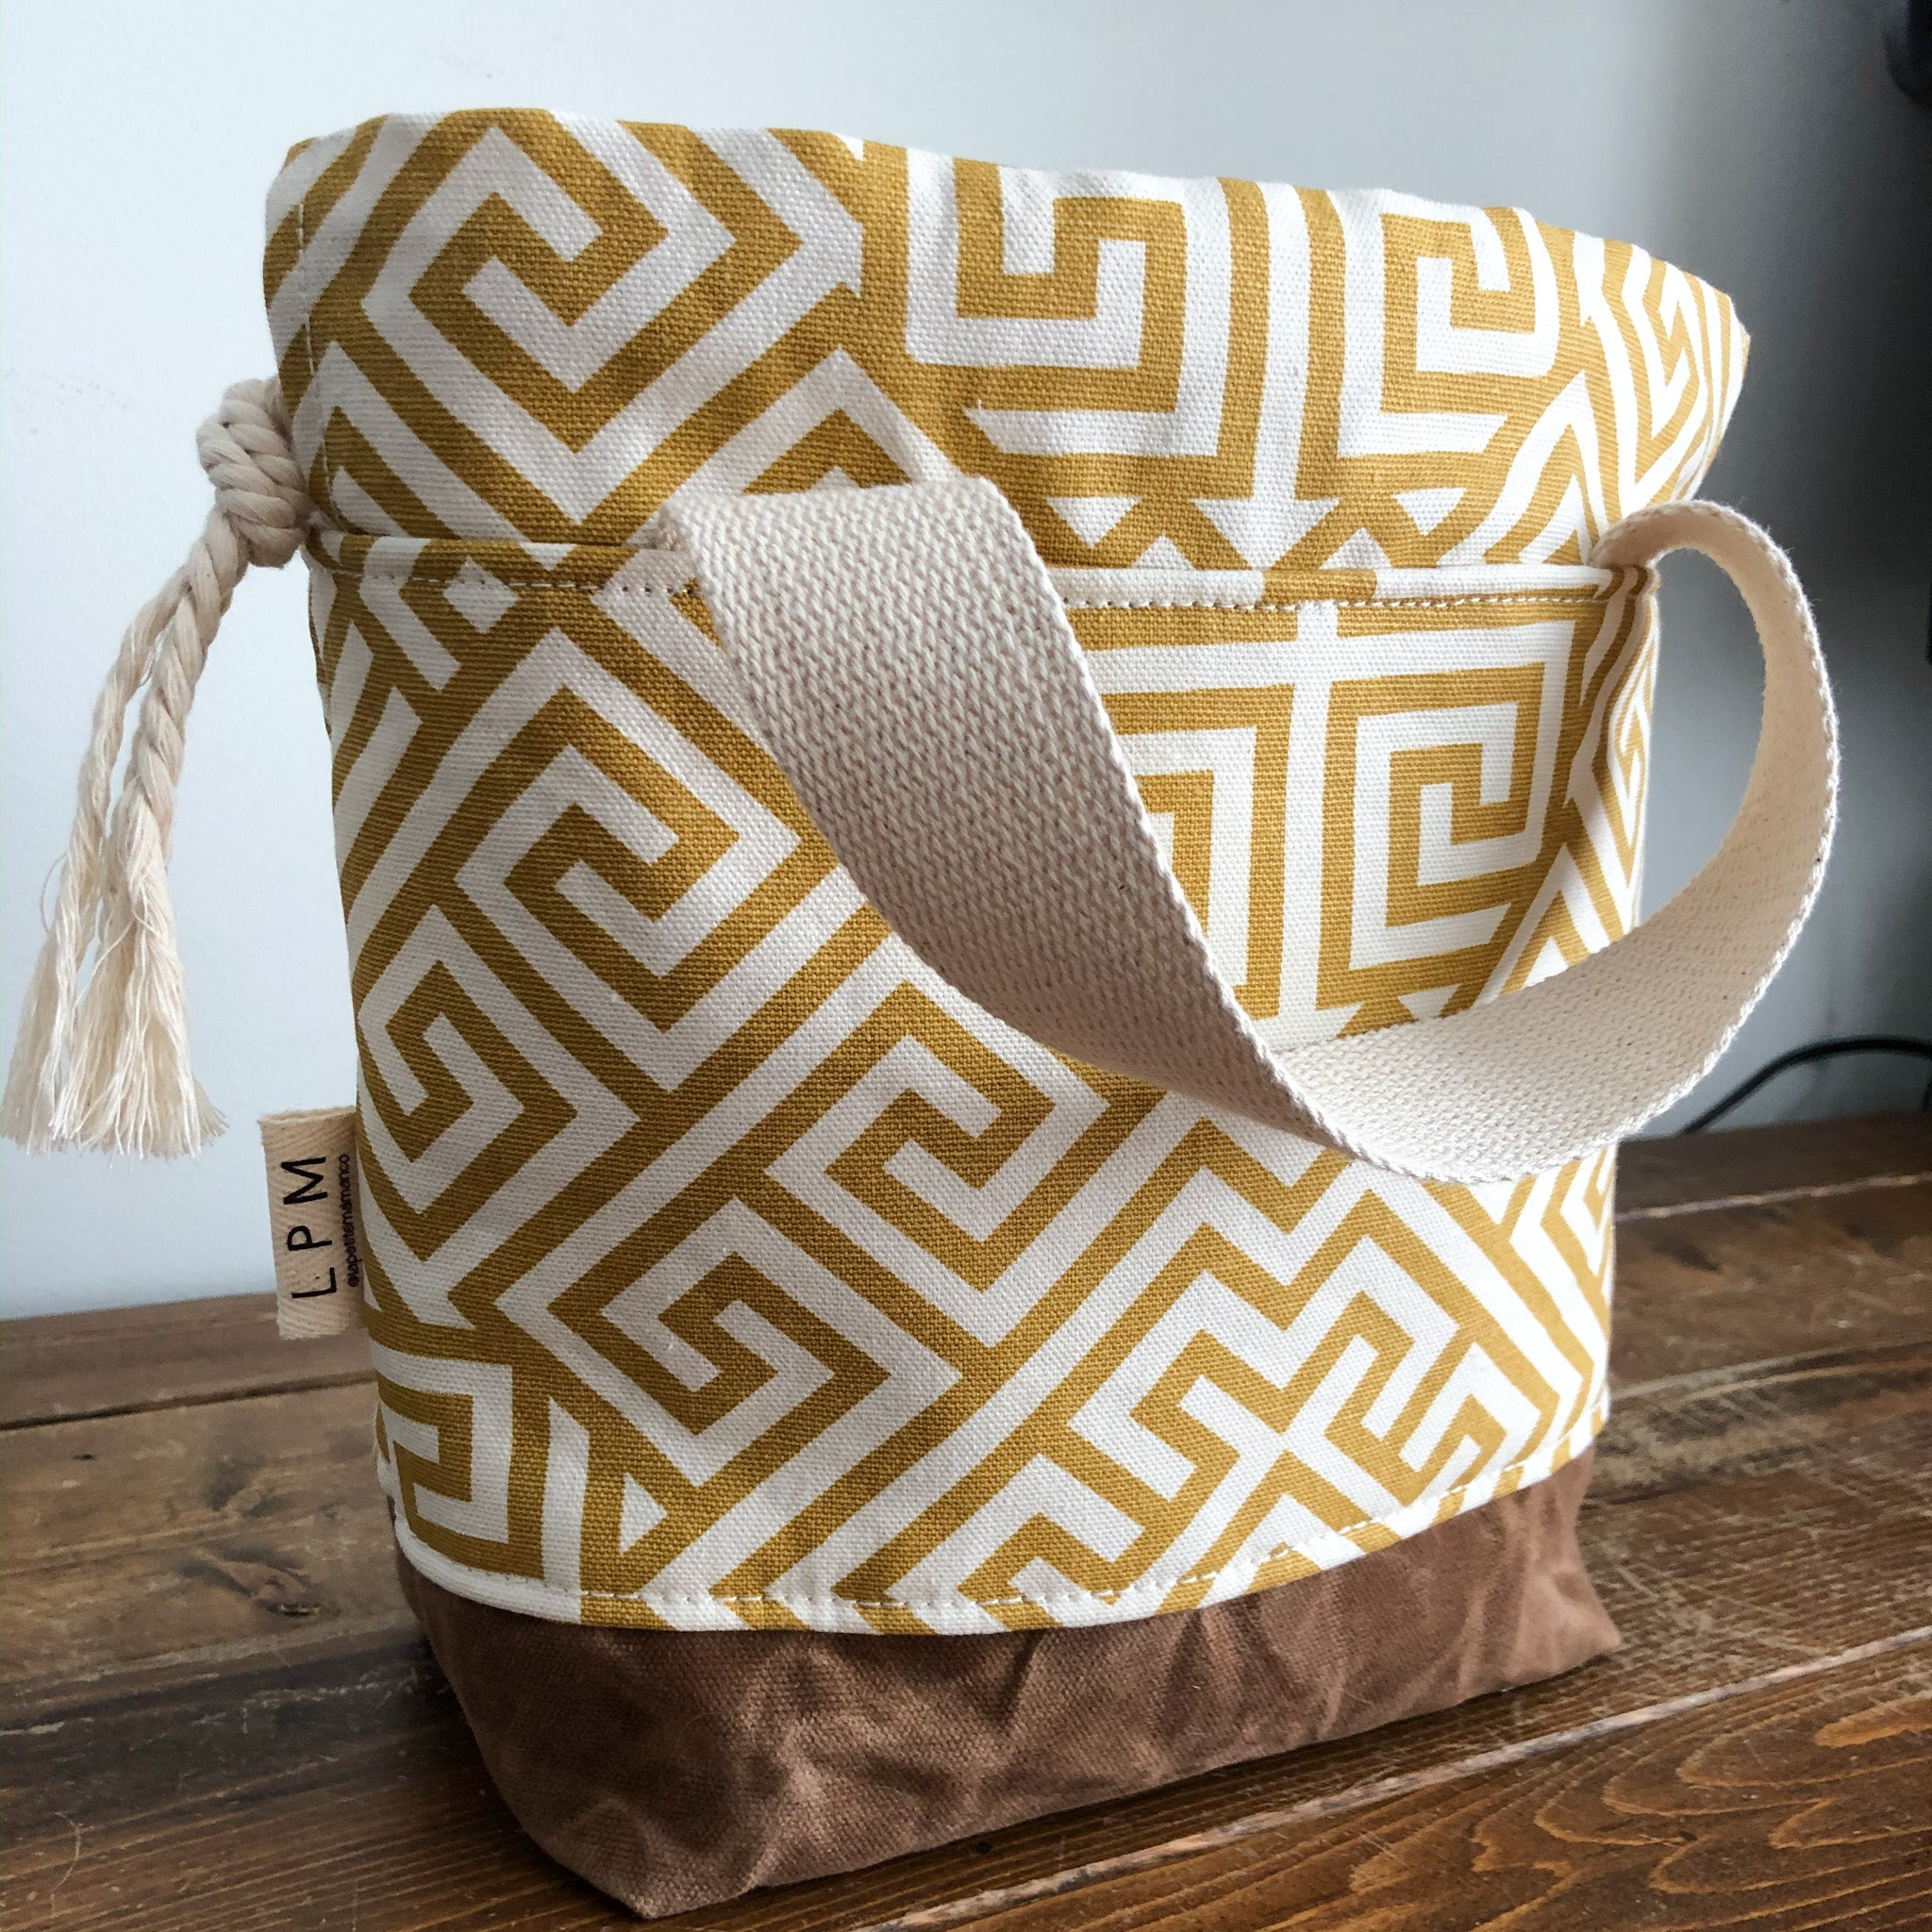 Bespoke Project Bag - Gold & Cream Geometric